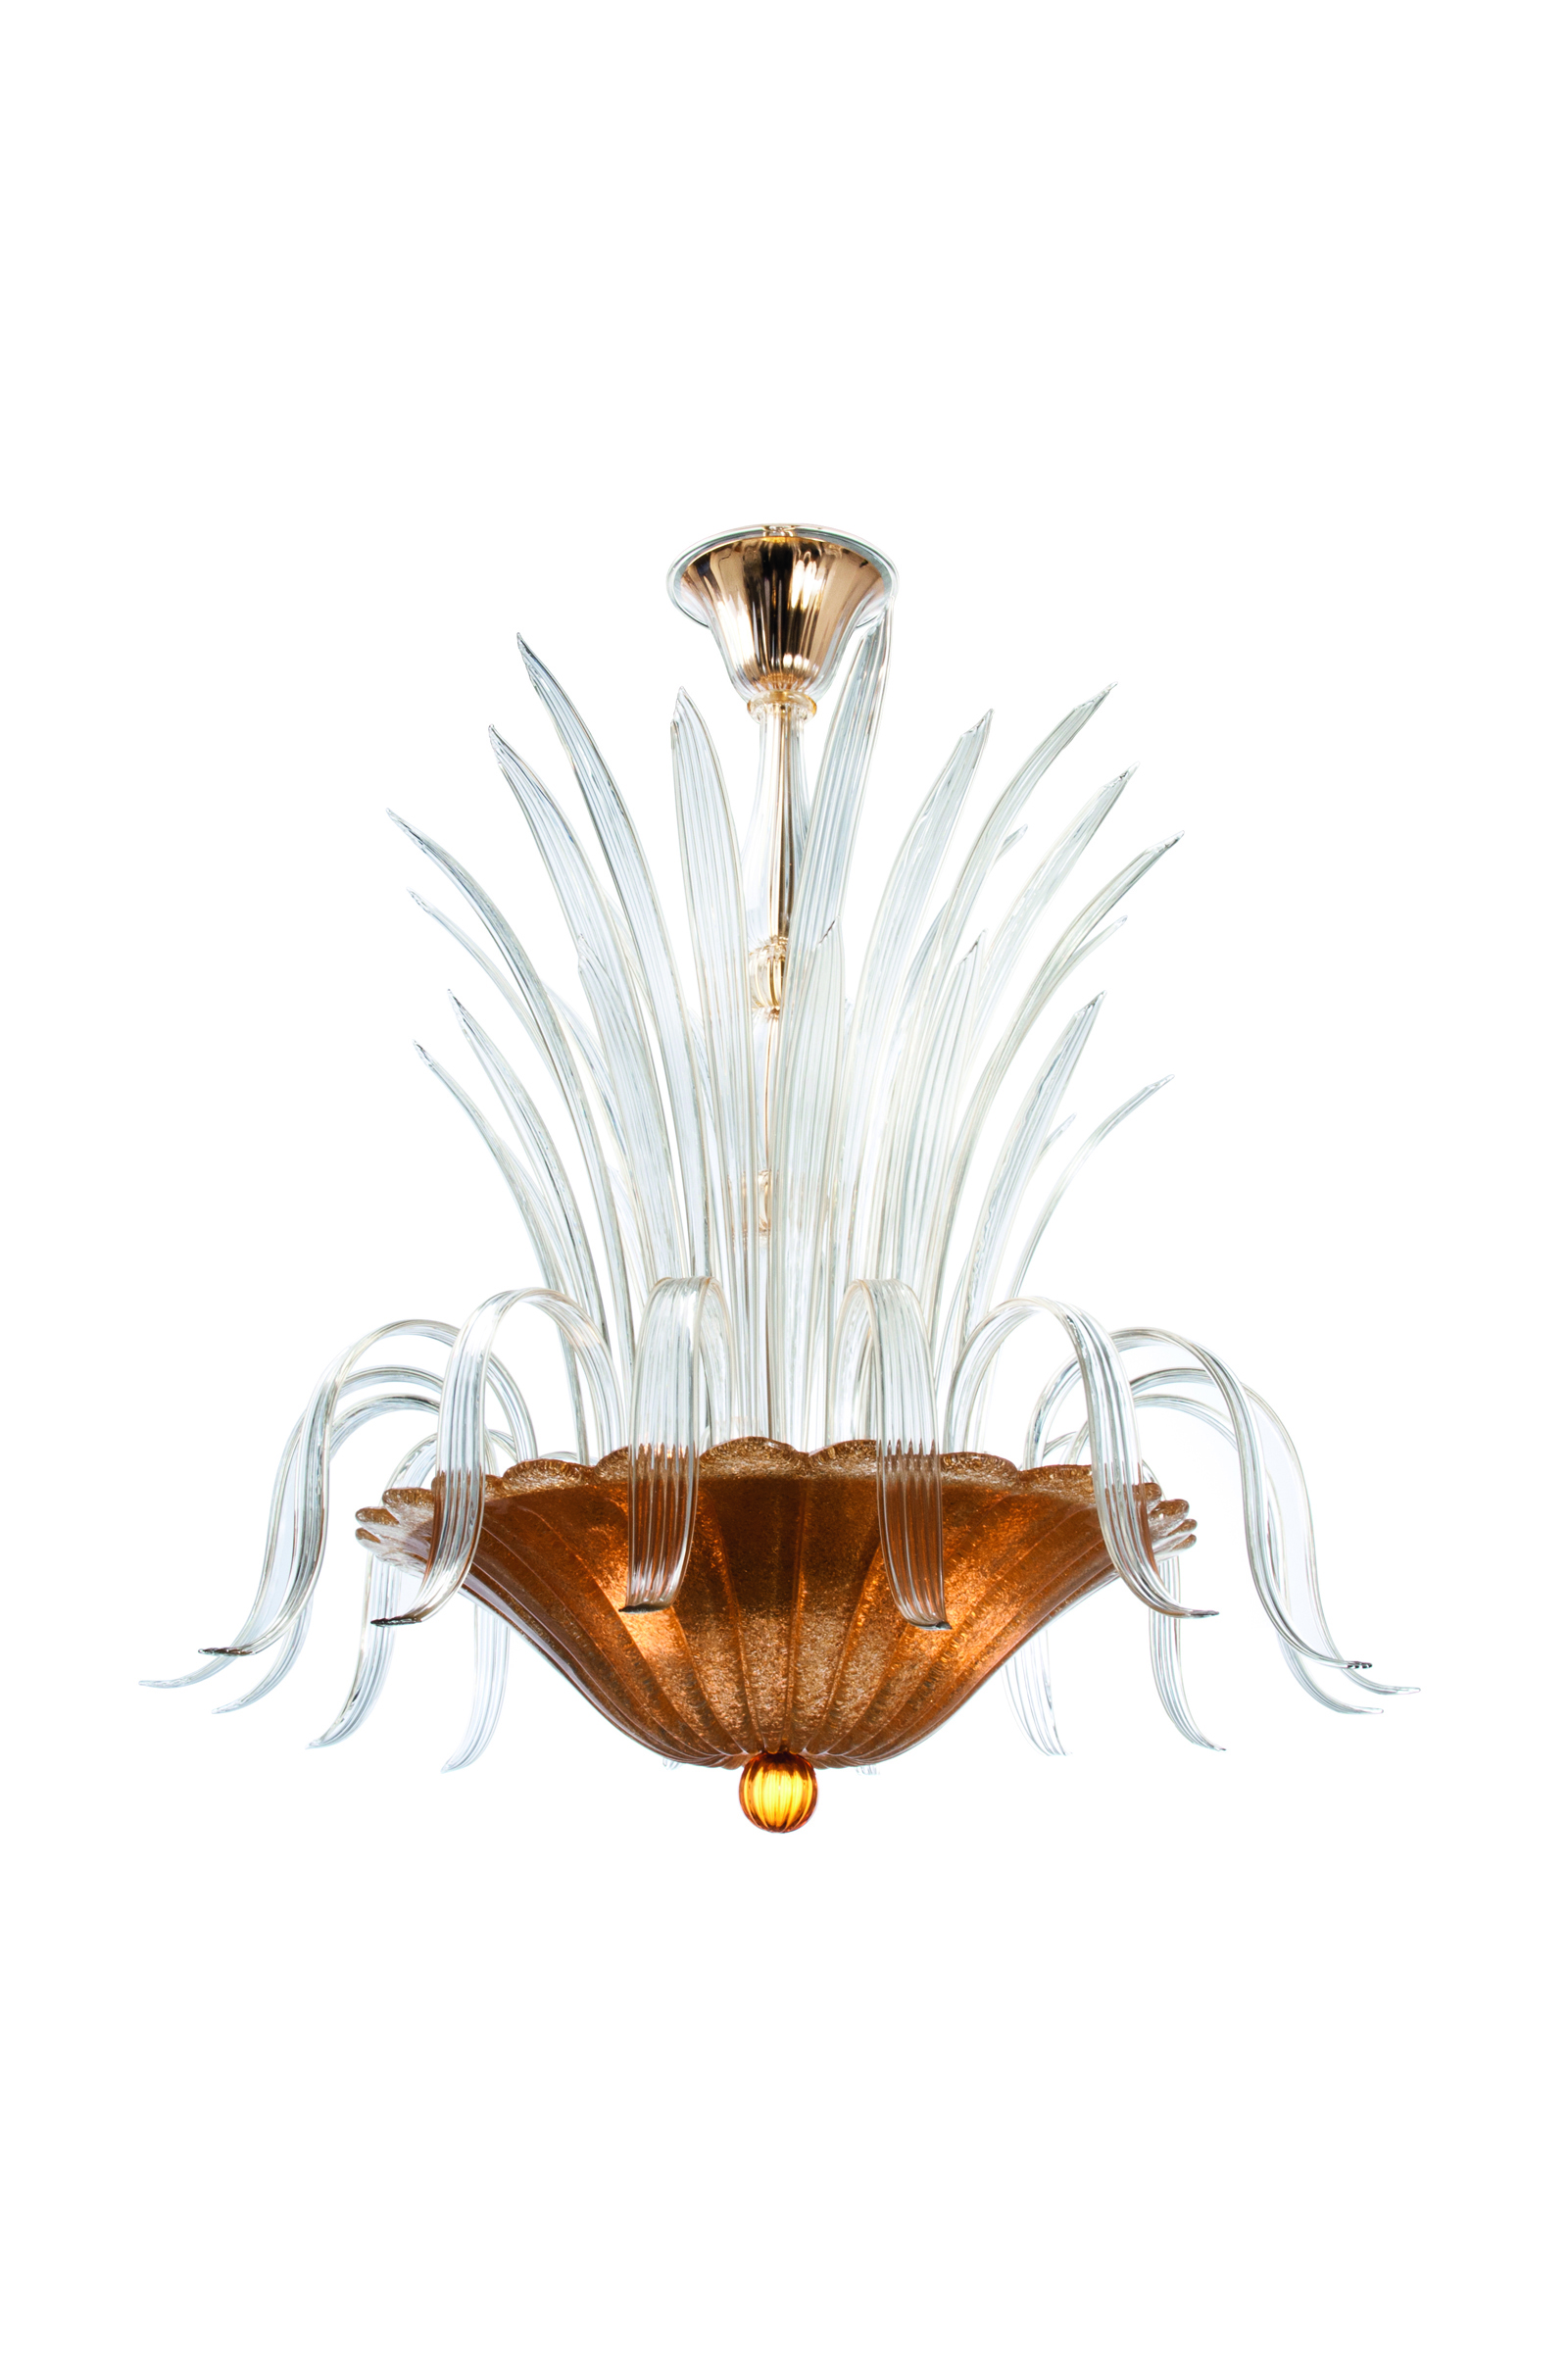 fontaine-lustre-chandelier-veronese-amber-ambre-11.jpg